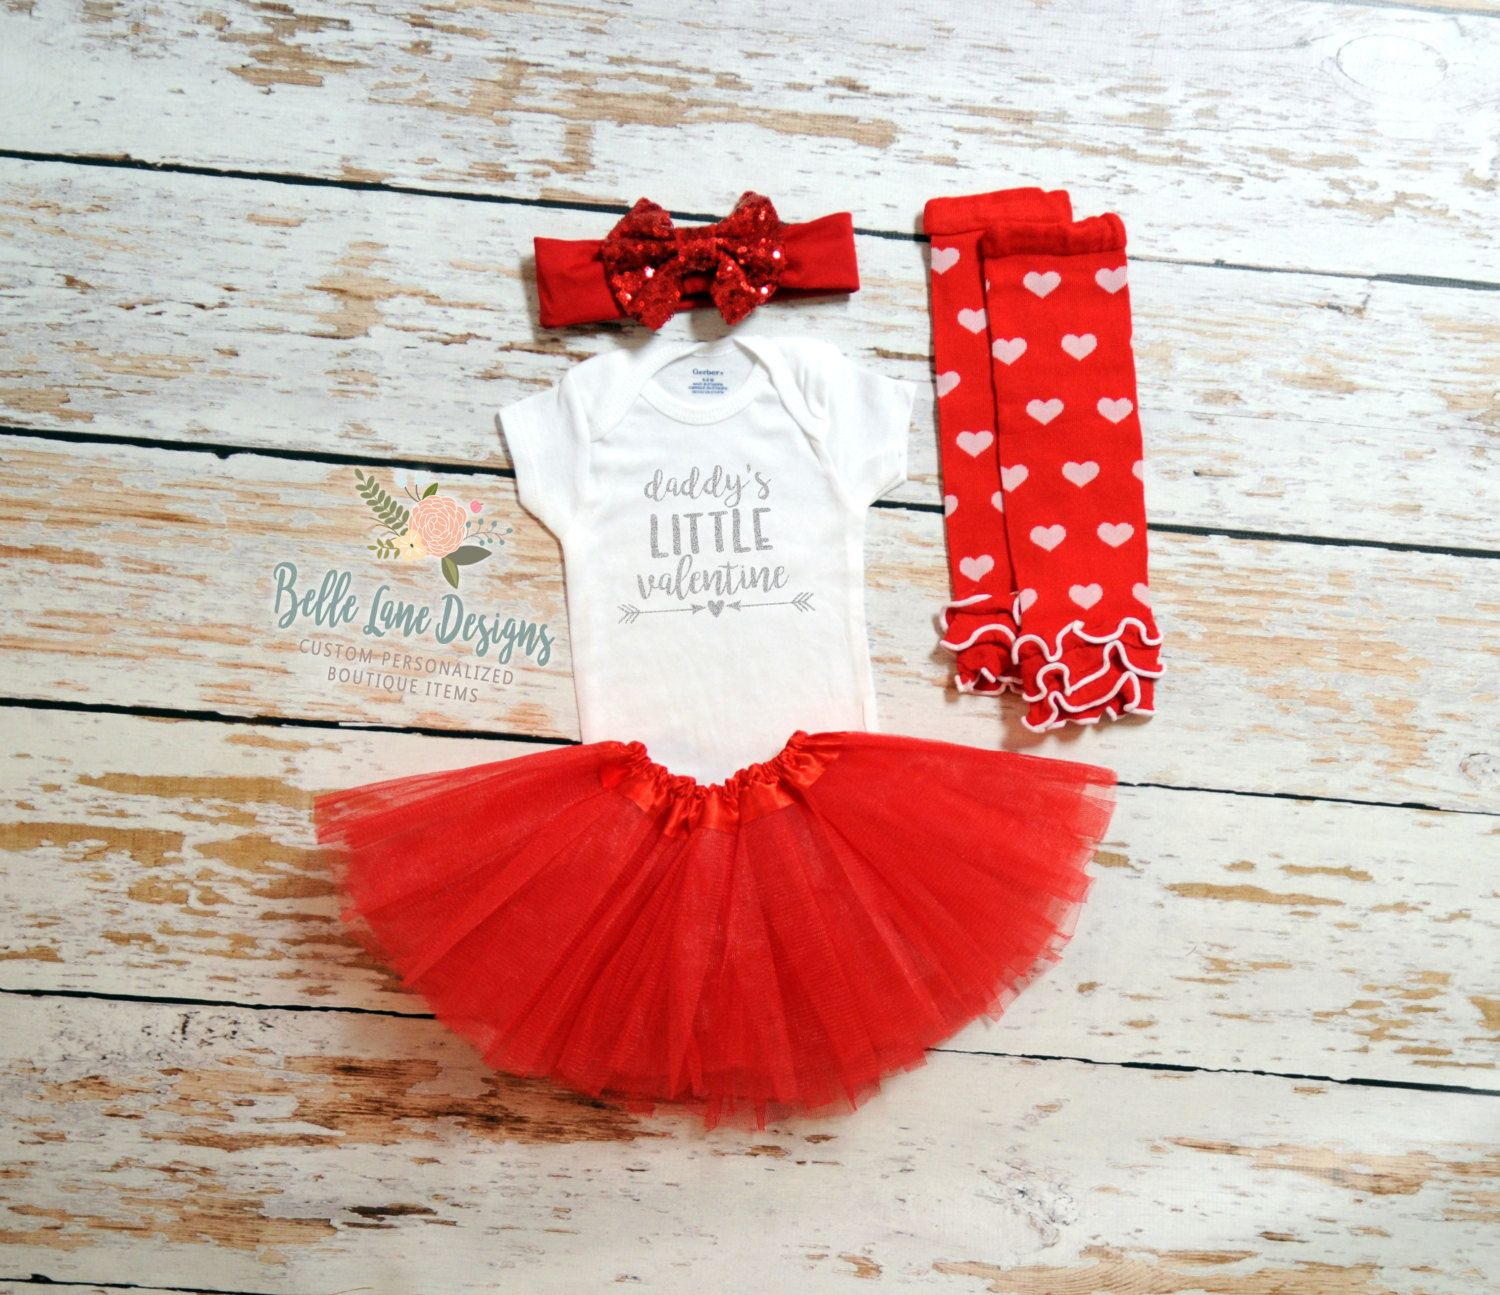 Daddy's Little Valentine Girl's Outfit w Tutu, Bow, Leg Warmers | Girl First Valentine's Day | Valentine Onesie | Baby First Valentine | 162 by BelleLaneDesigns on Etsy